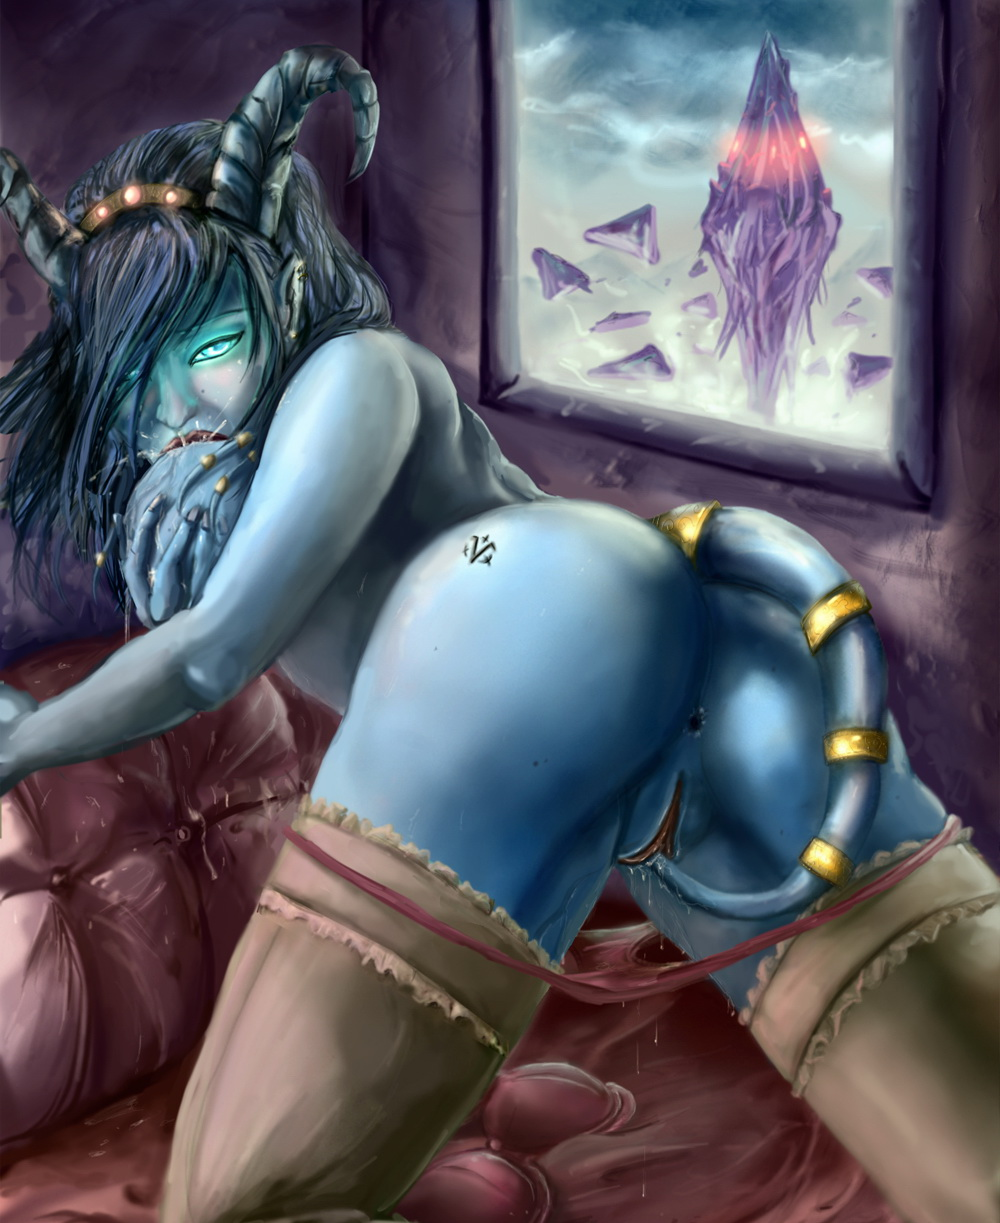 Draenei sex games nude photos